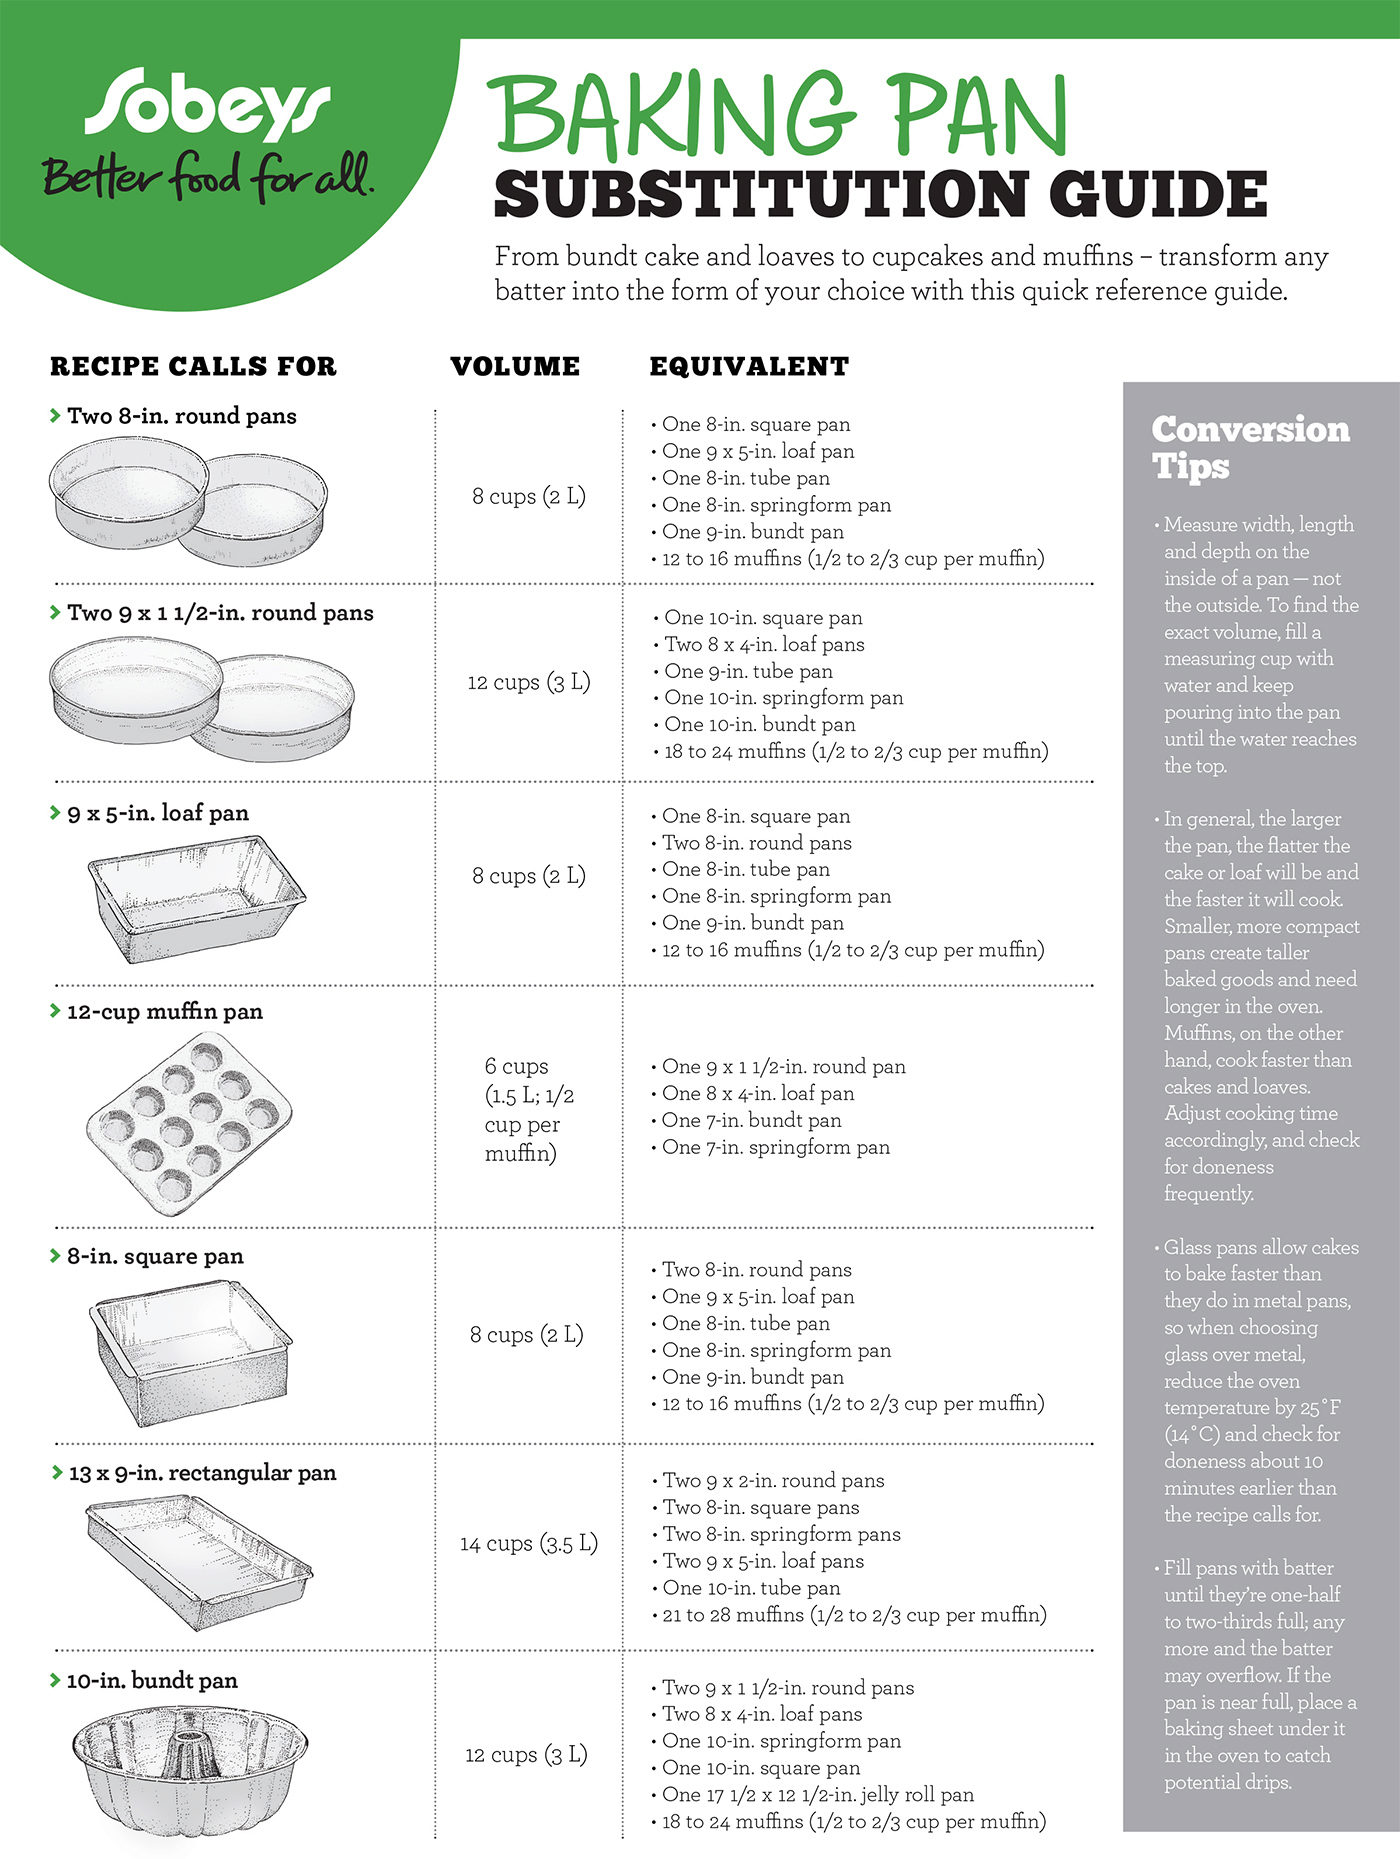 Baking Pan Substitution Guide Sobeys Inc